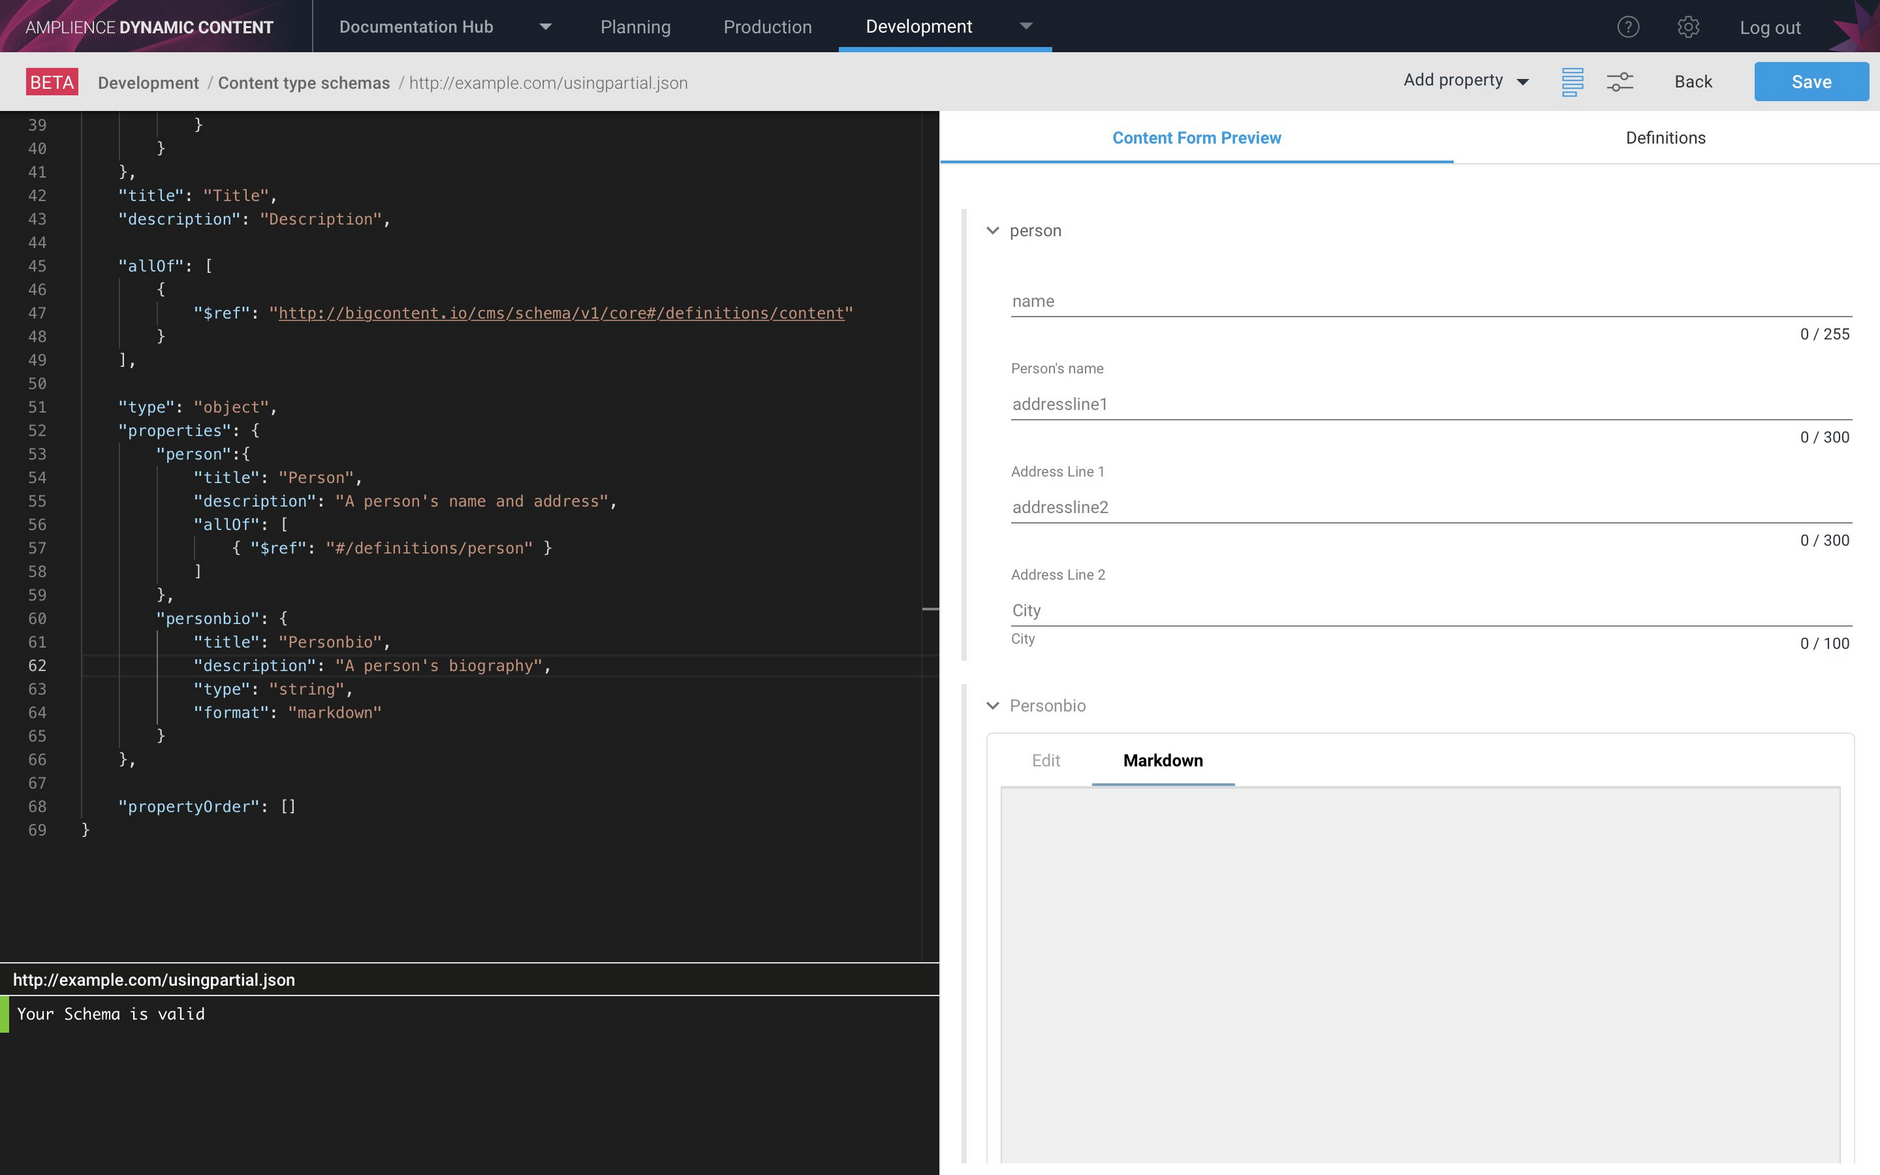 Previewing the content type schema including the person definition